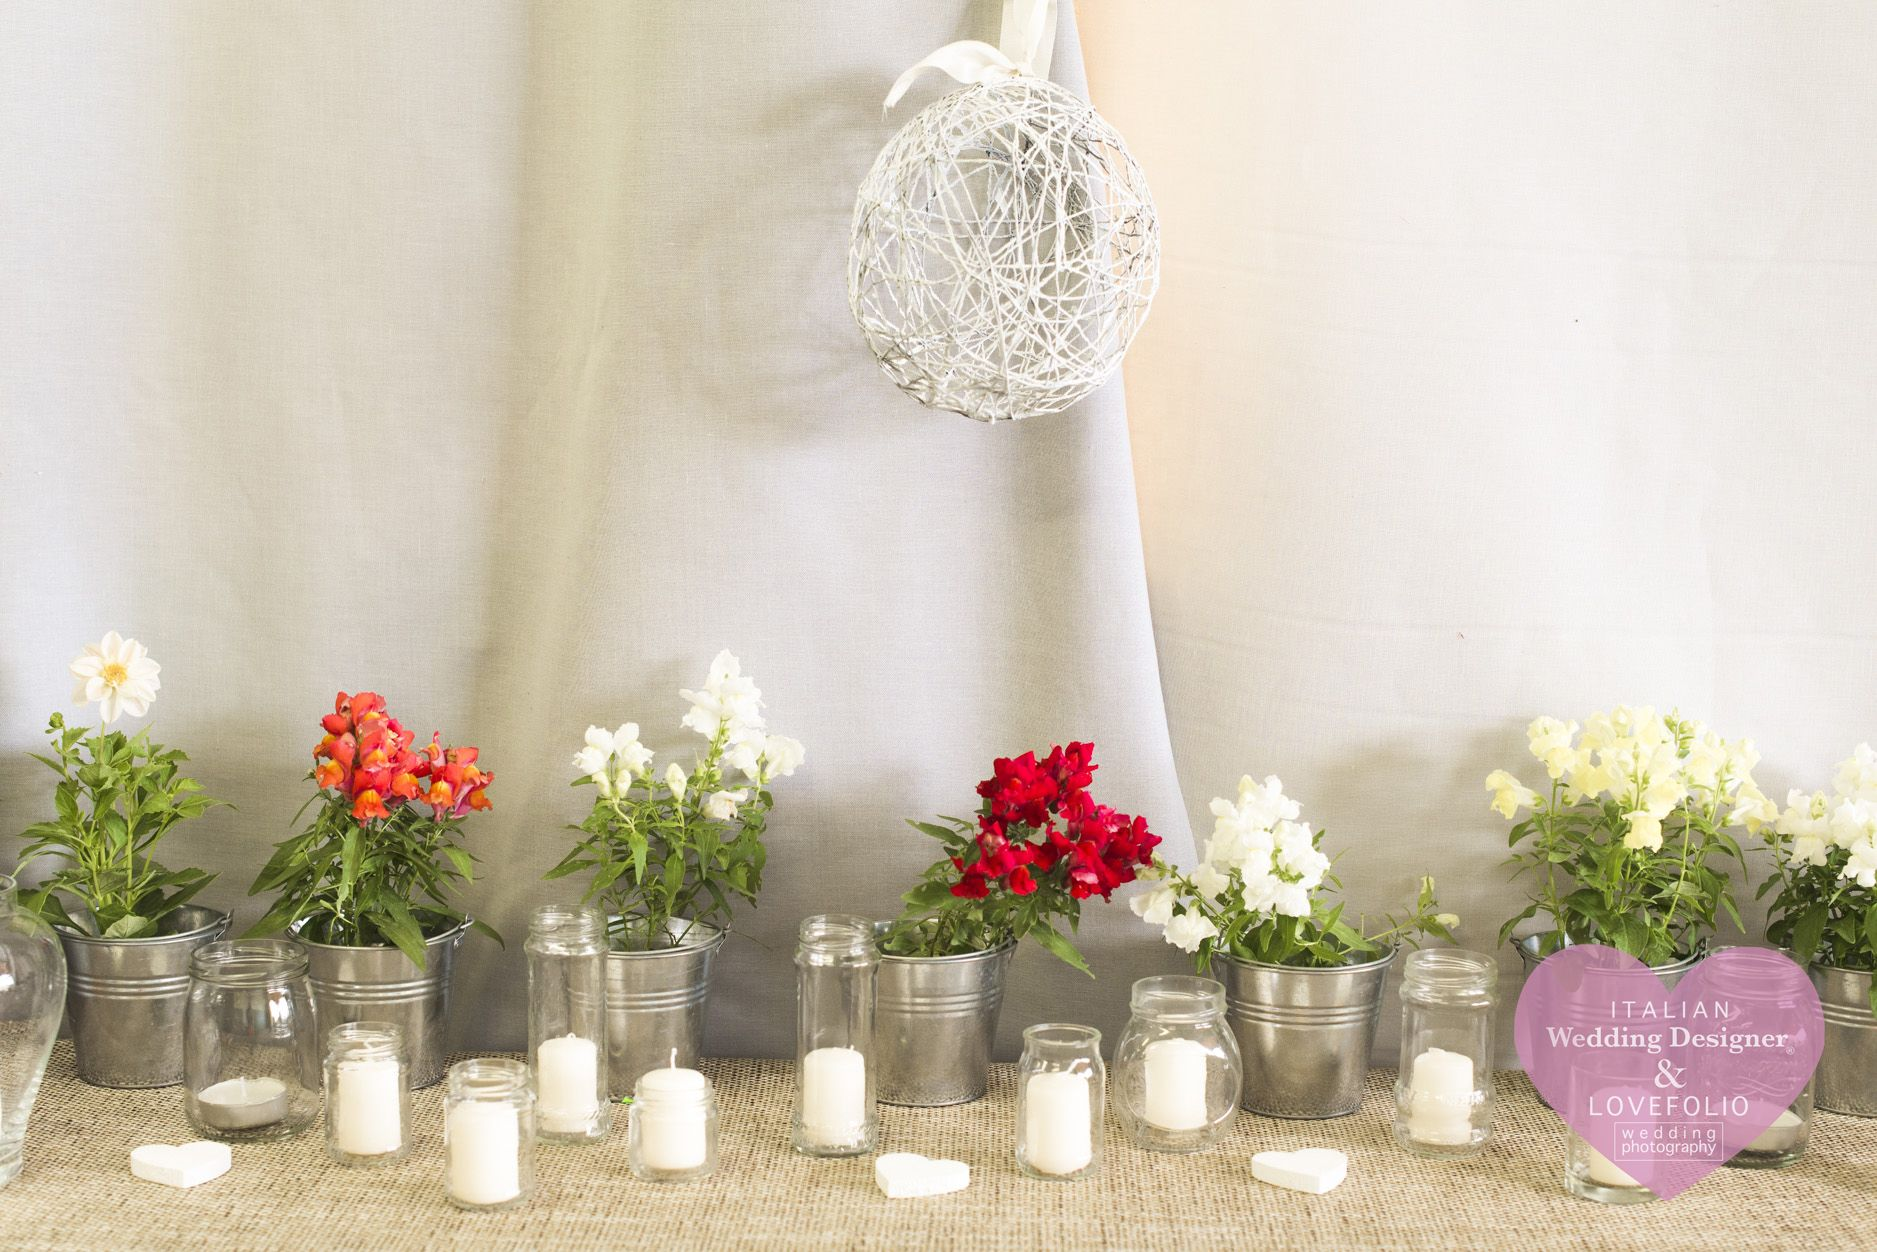 Rustic wedding buffet table: flowers, candles and burlap tablecloth ...